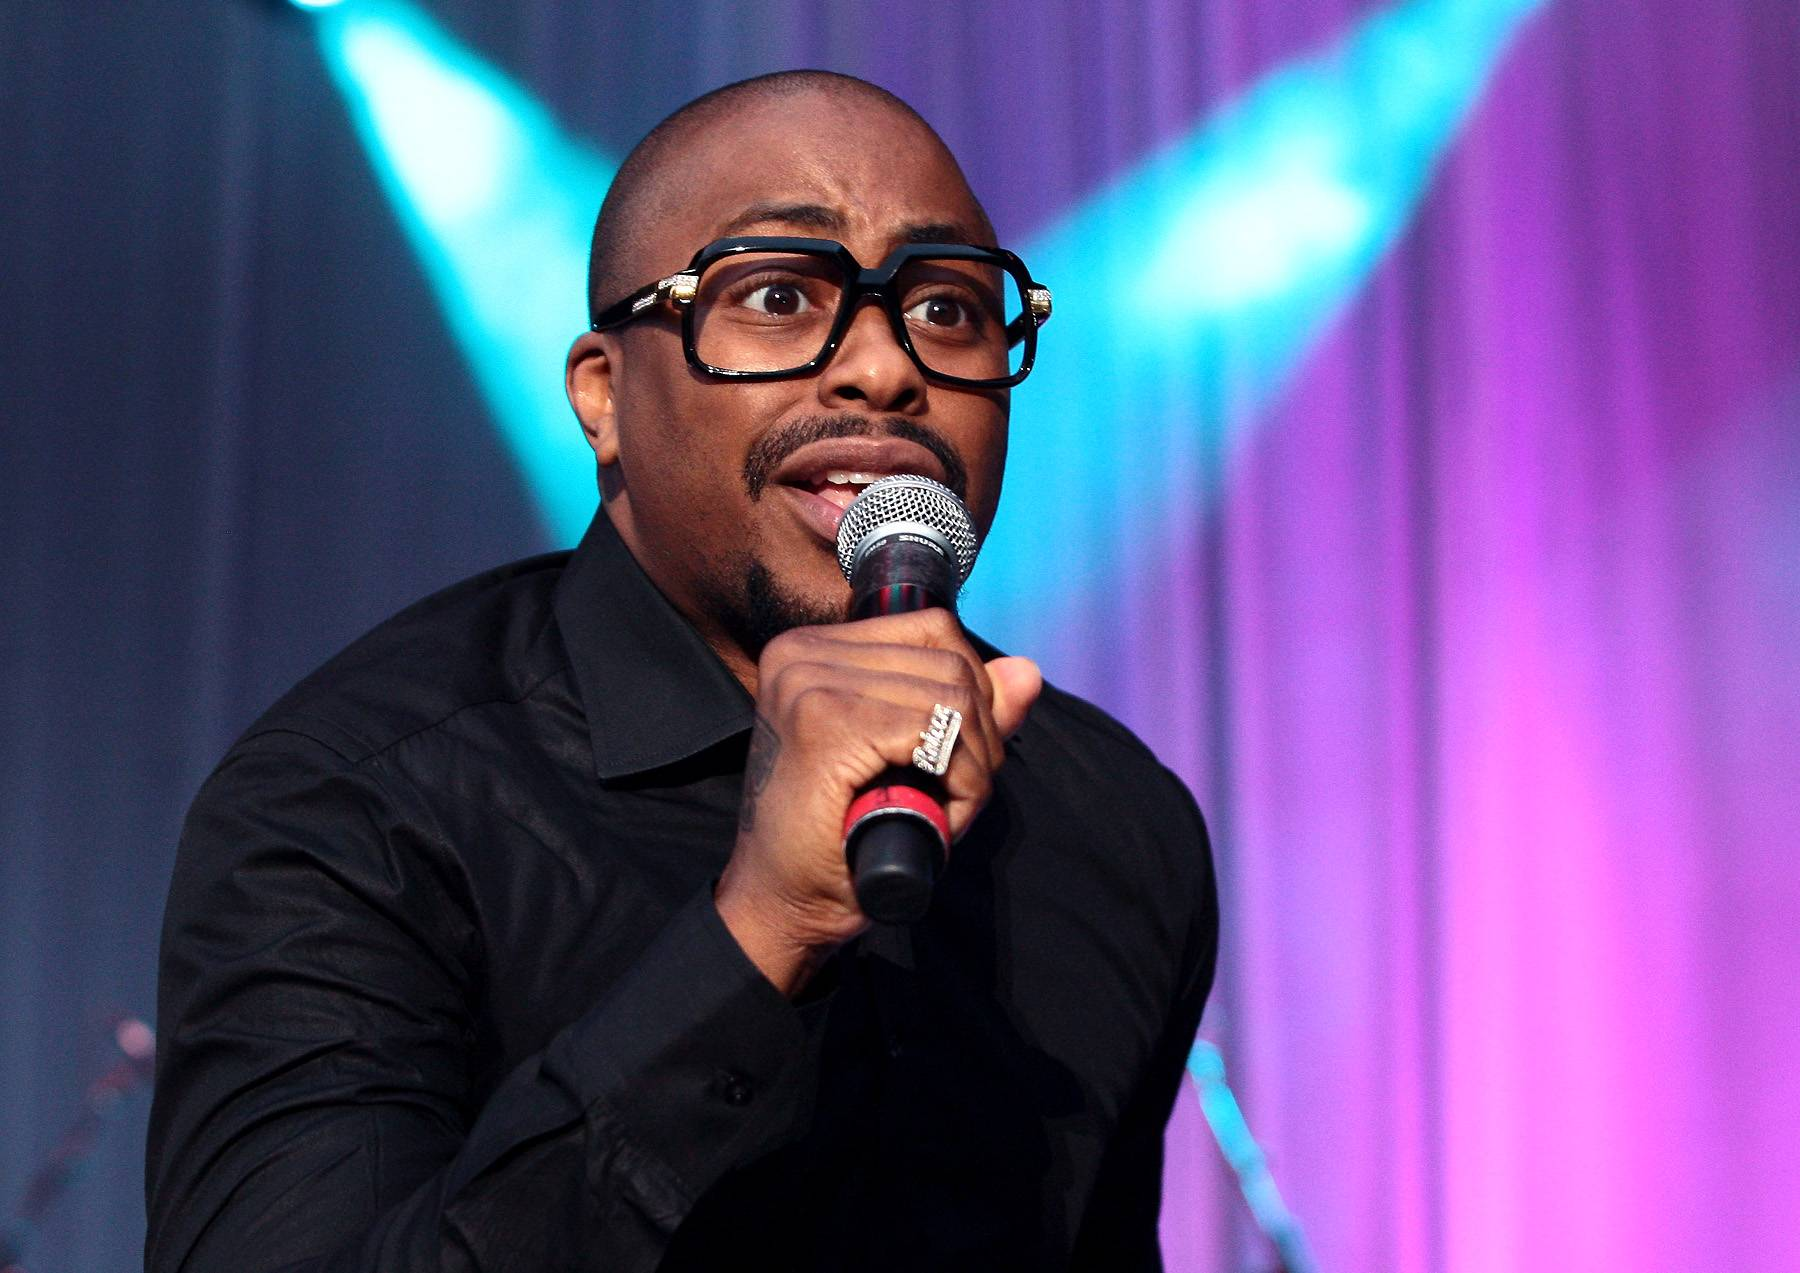 """Best Independent R&B/Soul Performance: Raheem DeVaughn - """"Love Connection"""" - The acclaimed R&B/soul singer sent fans on a trip to A Place Called Loveland with this Carvin & Ivan produced jam.  (Photo: Mychal Watts/WireImage)"""